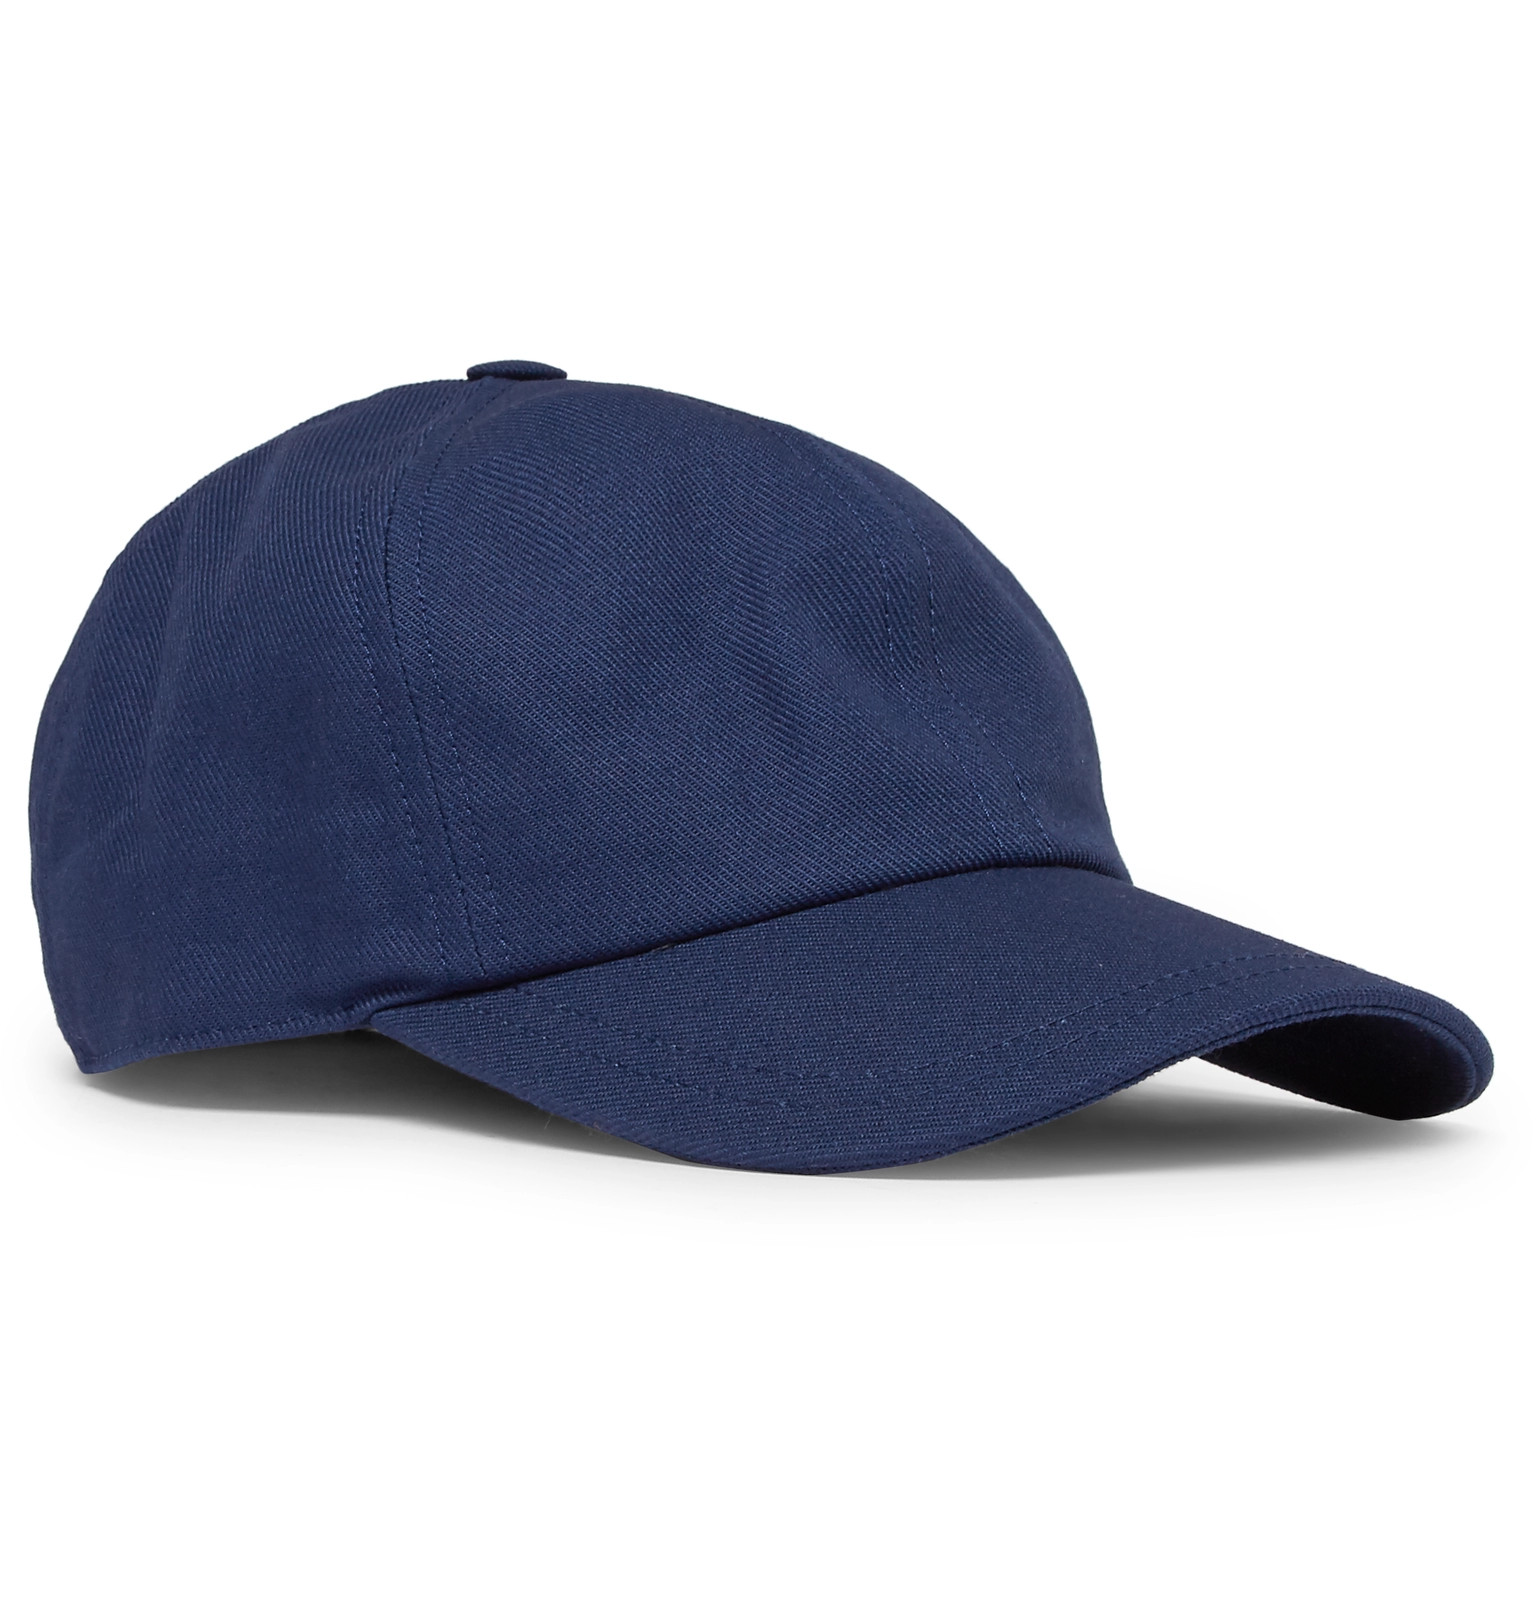 Maison Kitsuné - Cotton-Blend Twill Baseball Cap b92800ba6af